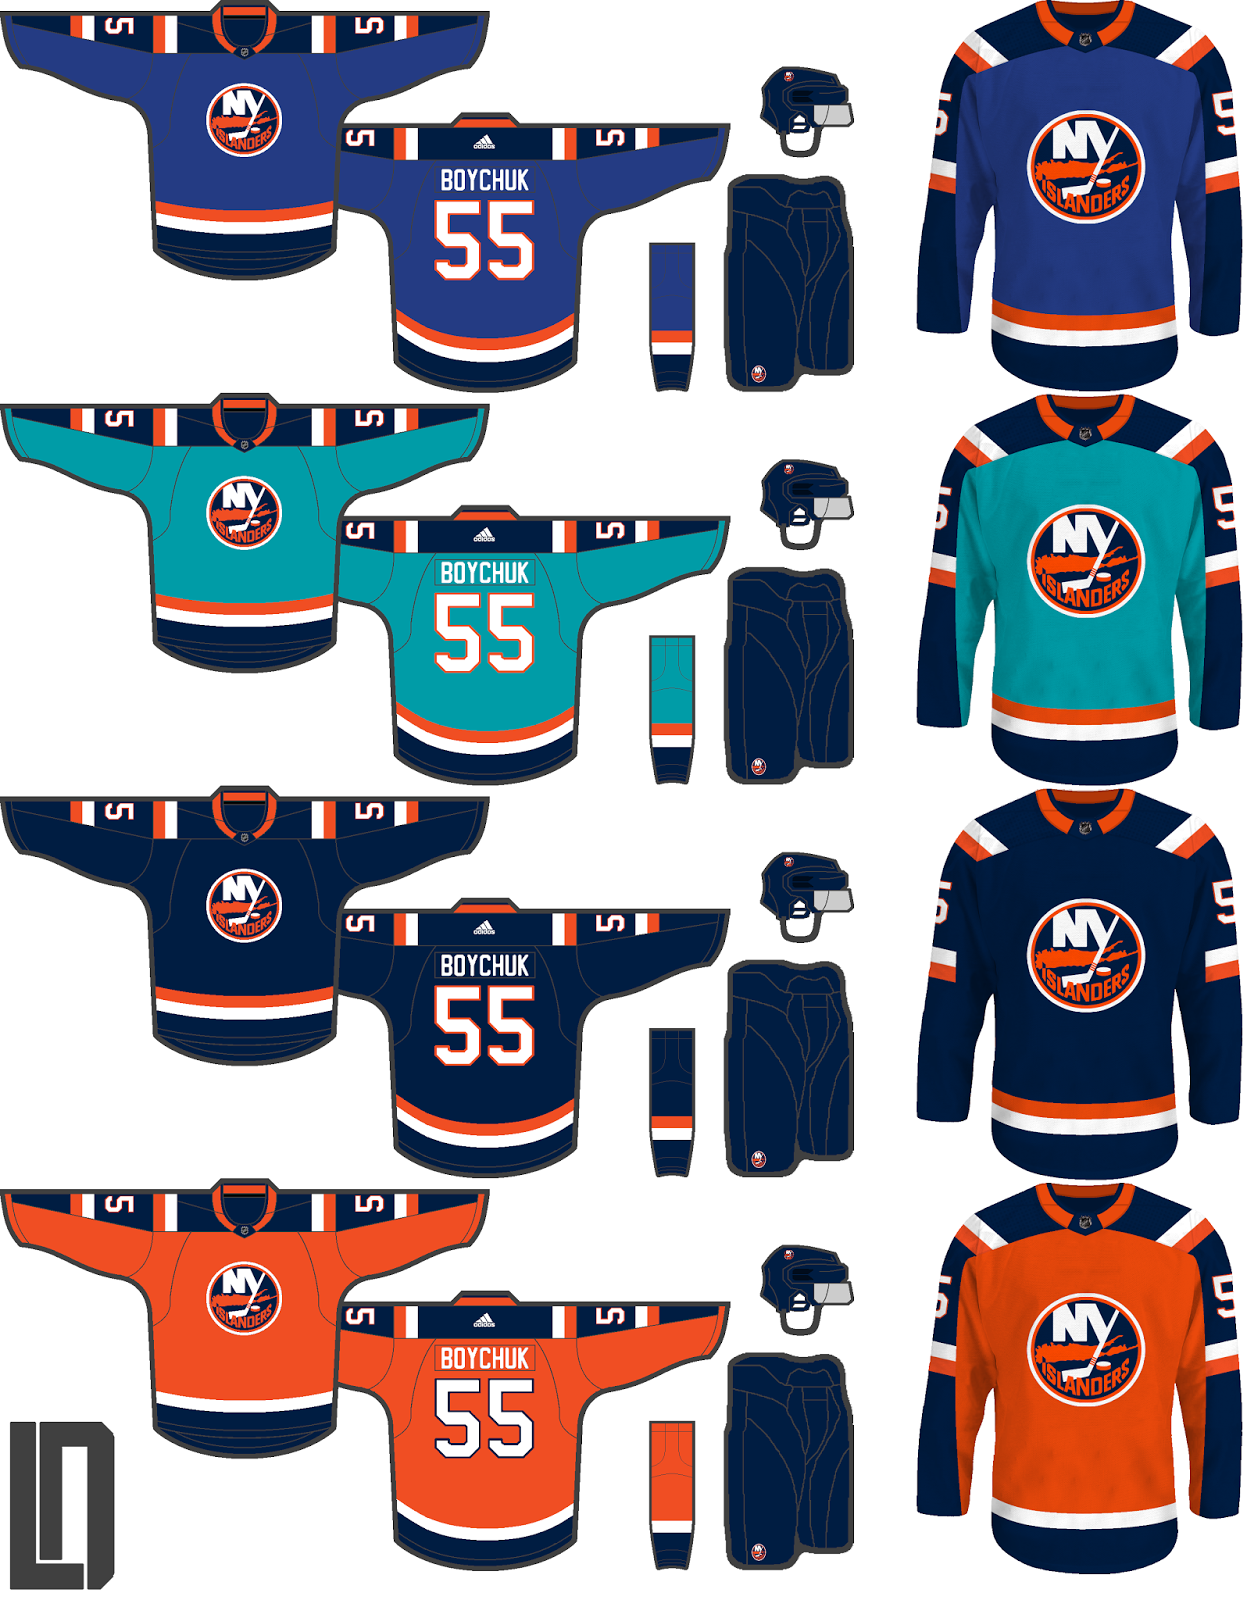 dee3ff0e4 NHL Adidas Alternates (Series completed!) - Page 4 - Concepts ...